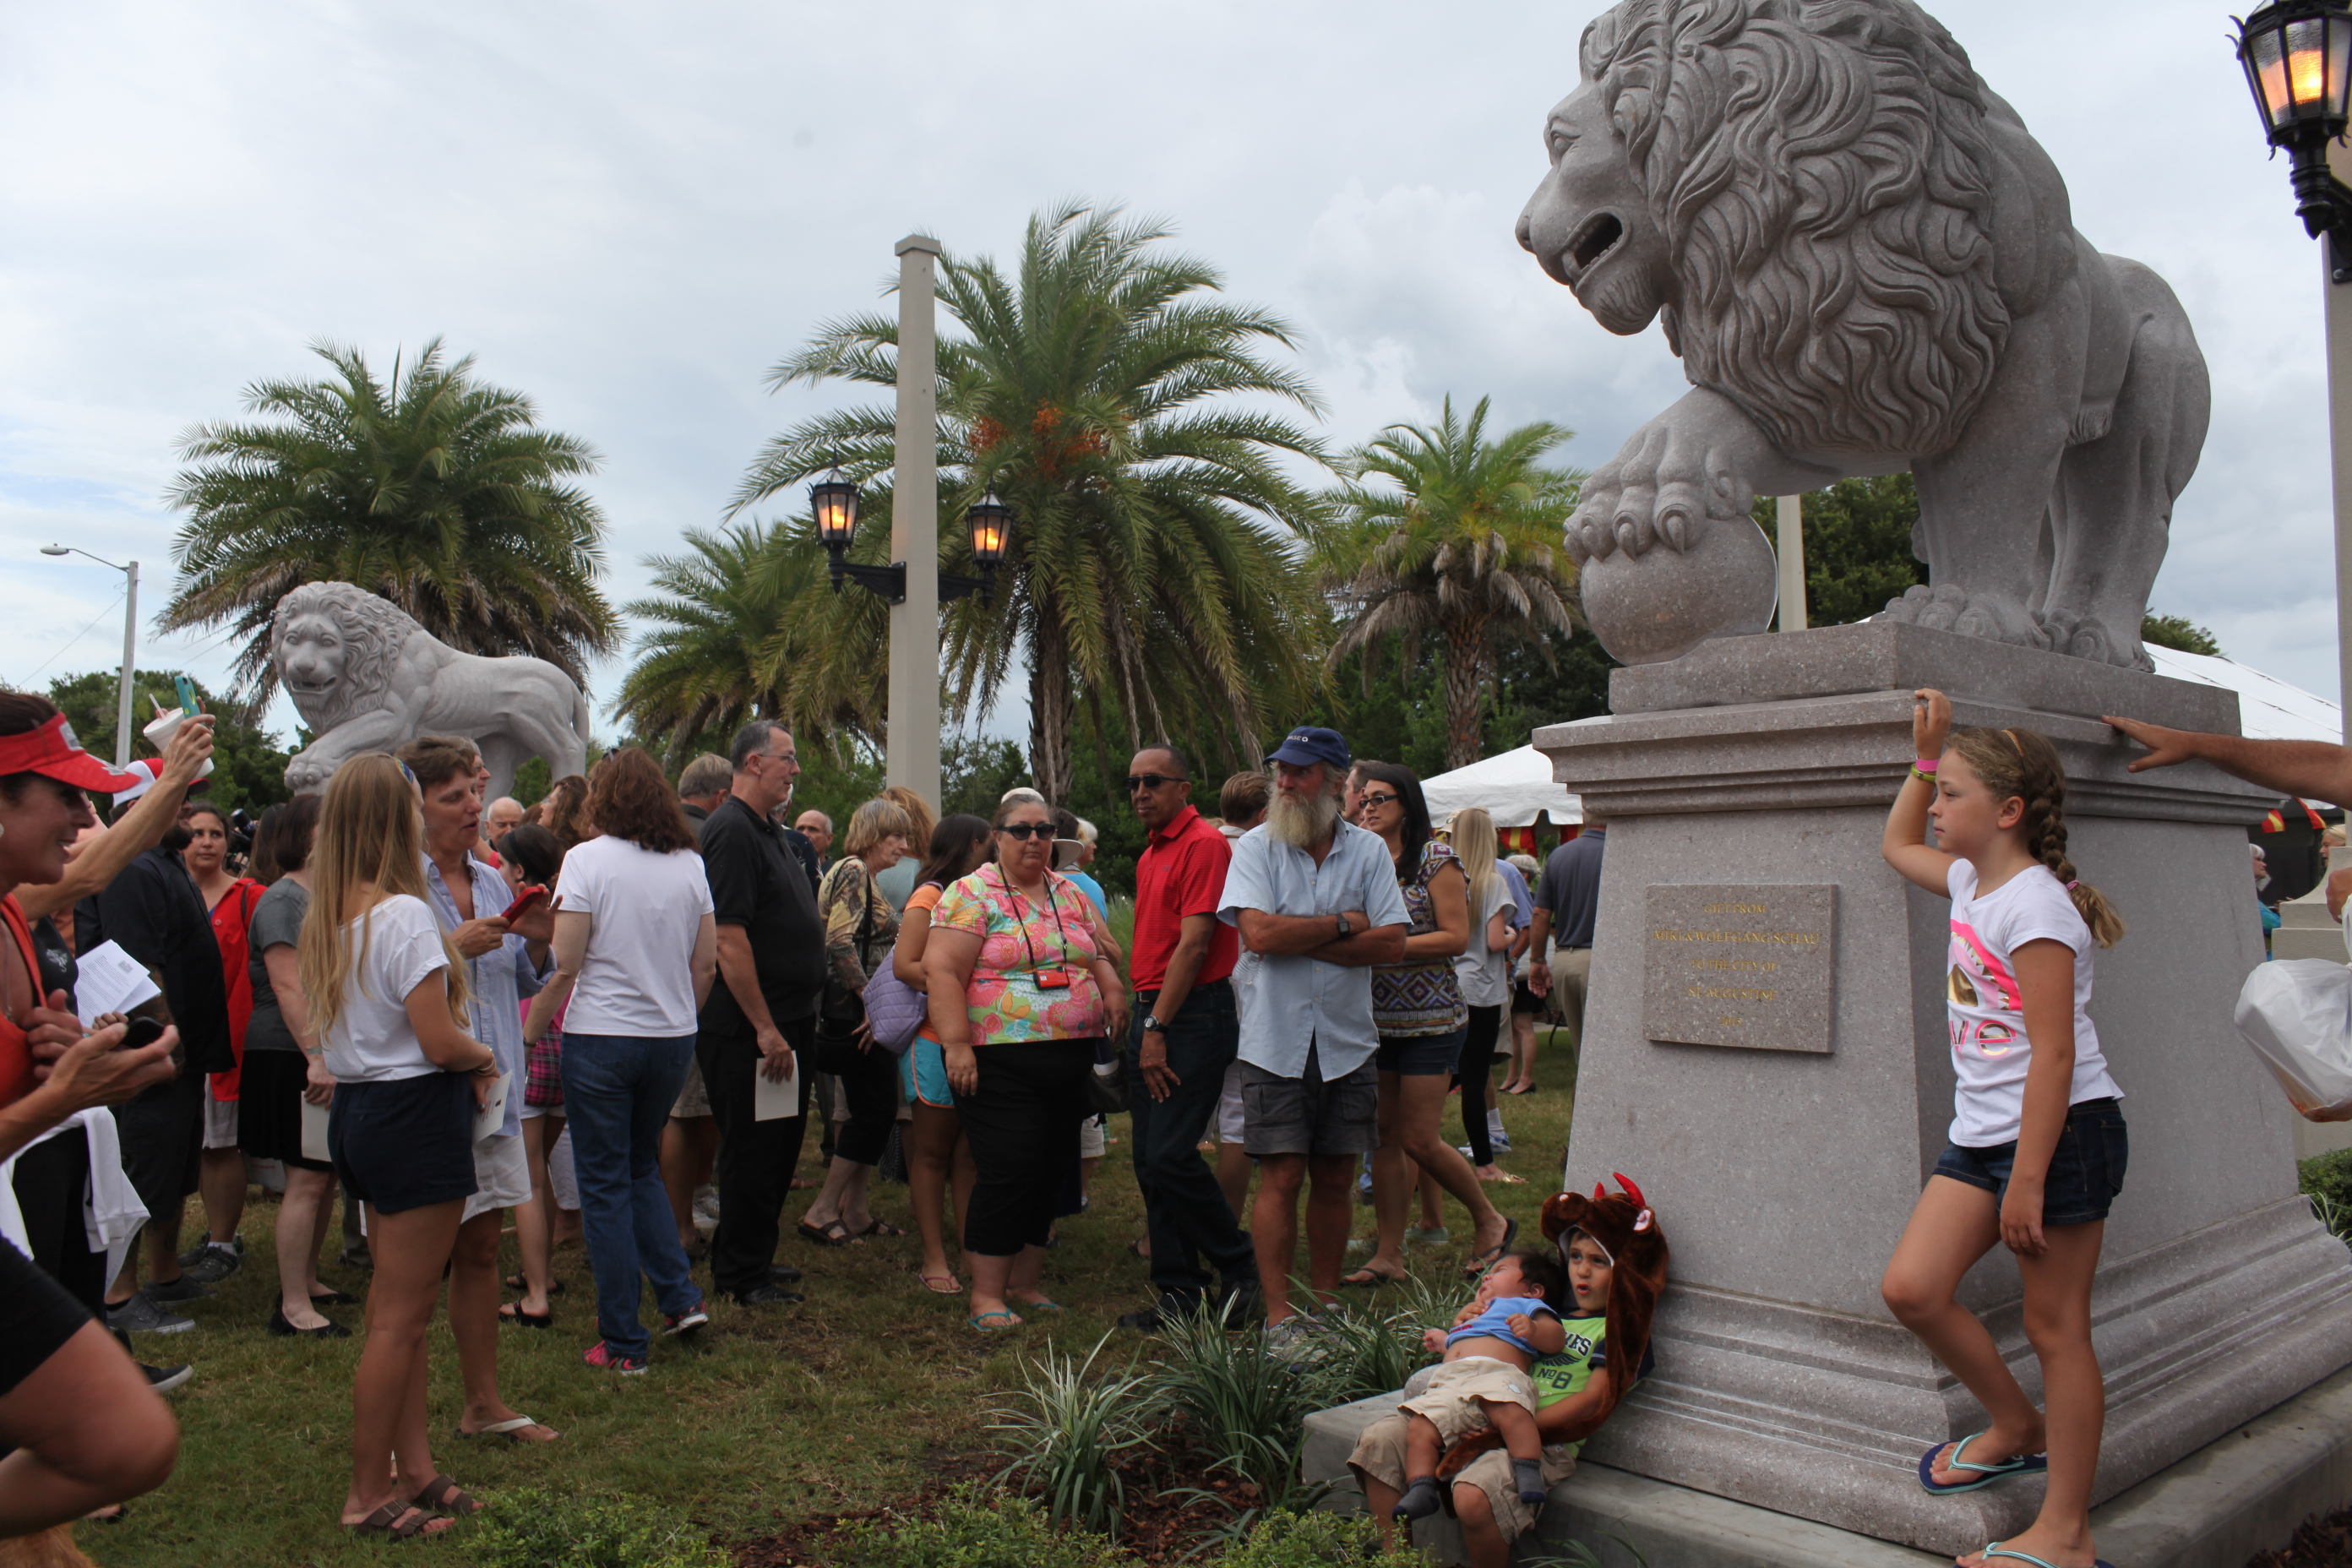 Pax and Peli, new lions gifted to the City of St. Augustine, were unveiled on Thursday, July 2 at Davis Park, on the east side of the Bridge of Lions. The original two lion sculptures, Firm and Faithful, stand at the base of the west side of the bridge in St. Augustine. Photos by Renee Unsworth